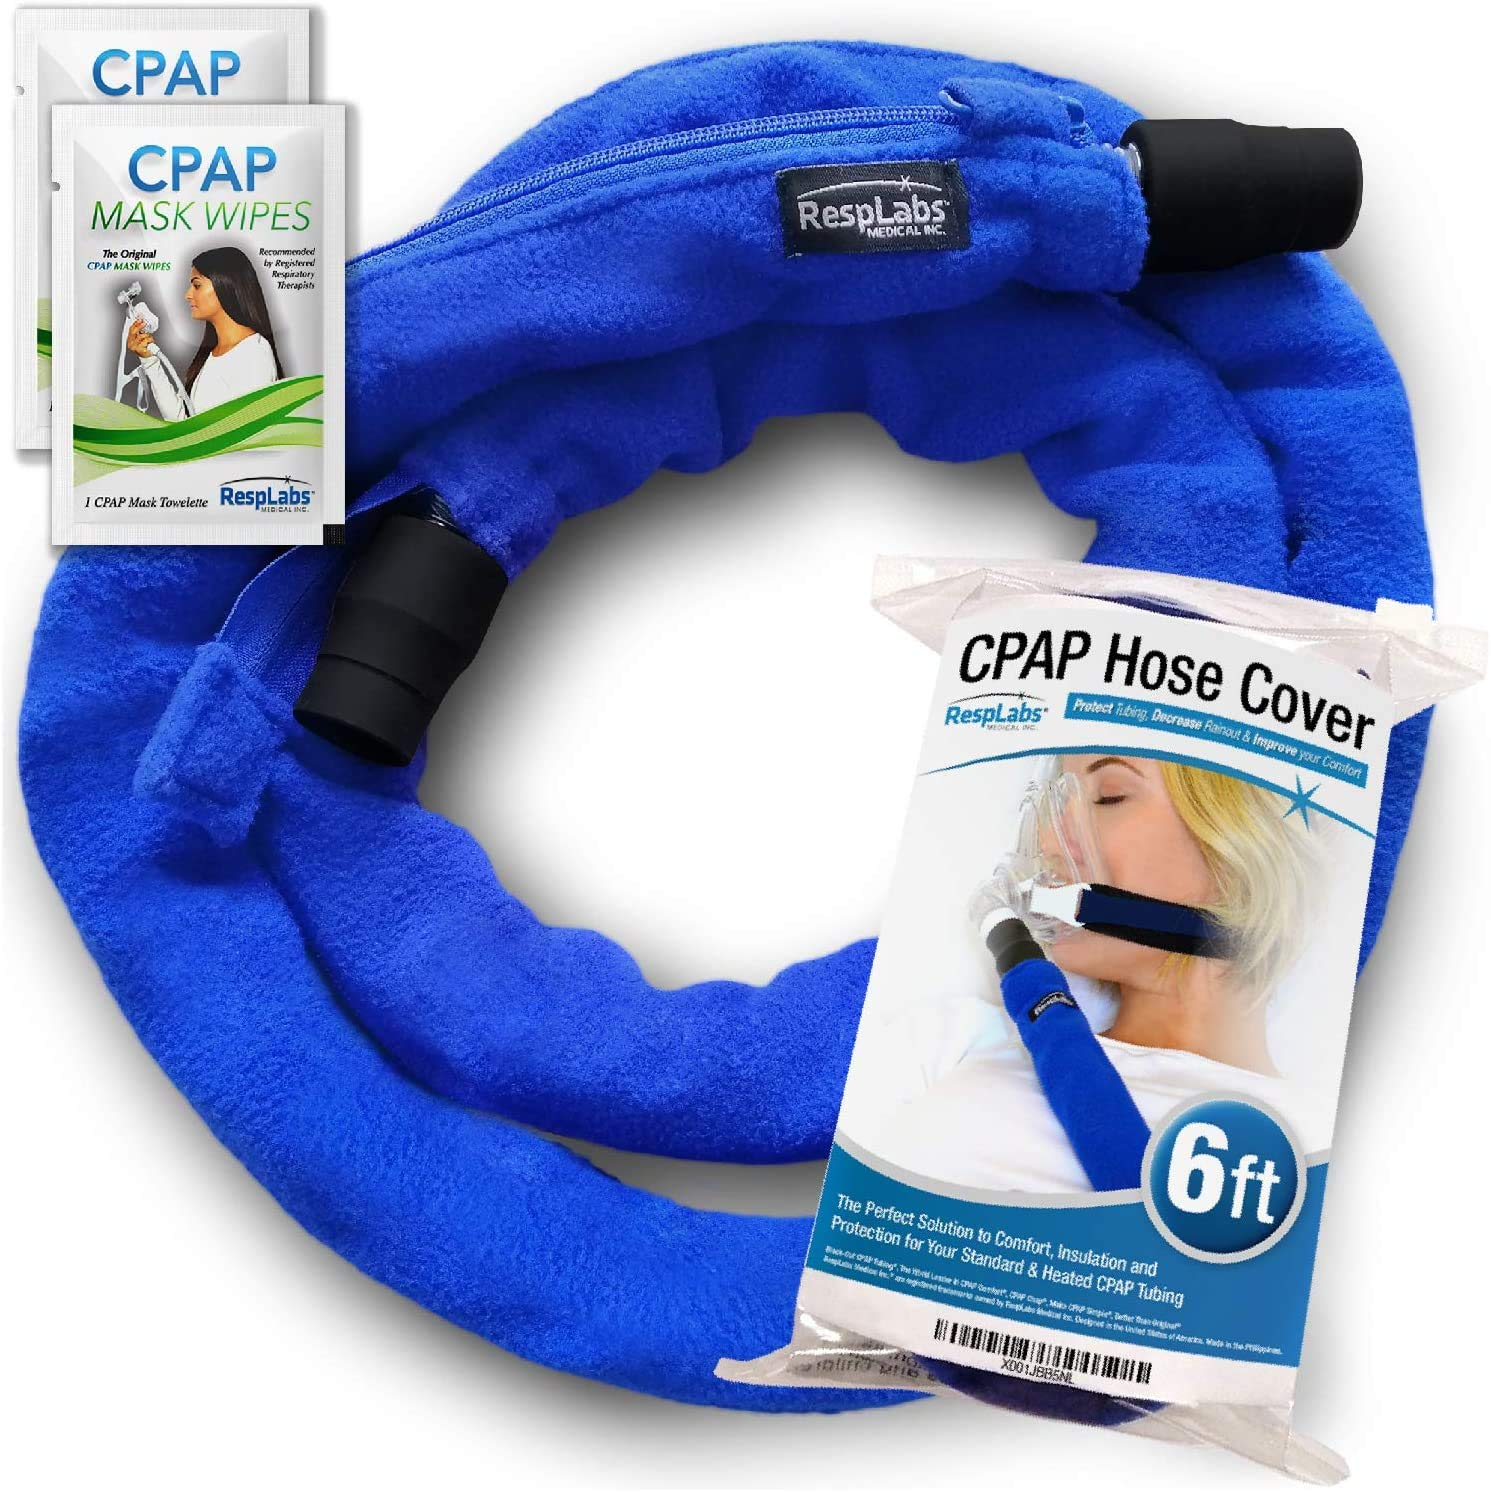 RespLabs CPAP Hose Cover with Zipper - Fits All Type of Tubing, 6 Foot - Reusable, Comfort Fleece, Tubing Insulator. Super Soft, Washable, Breathable Cover.